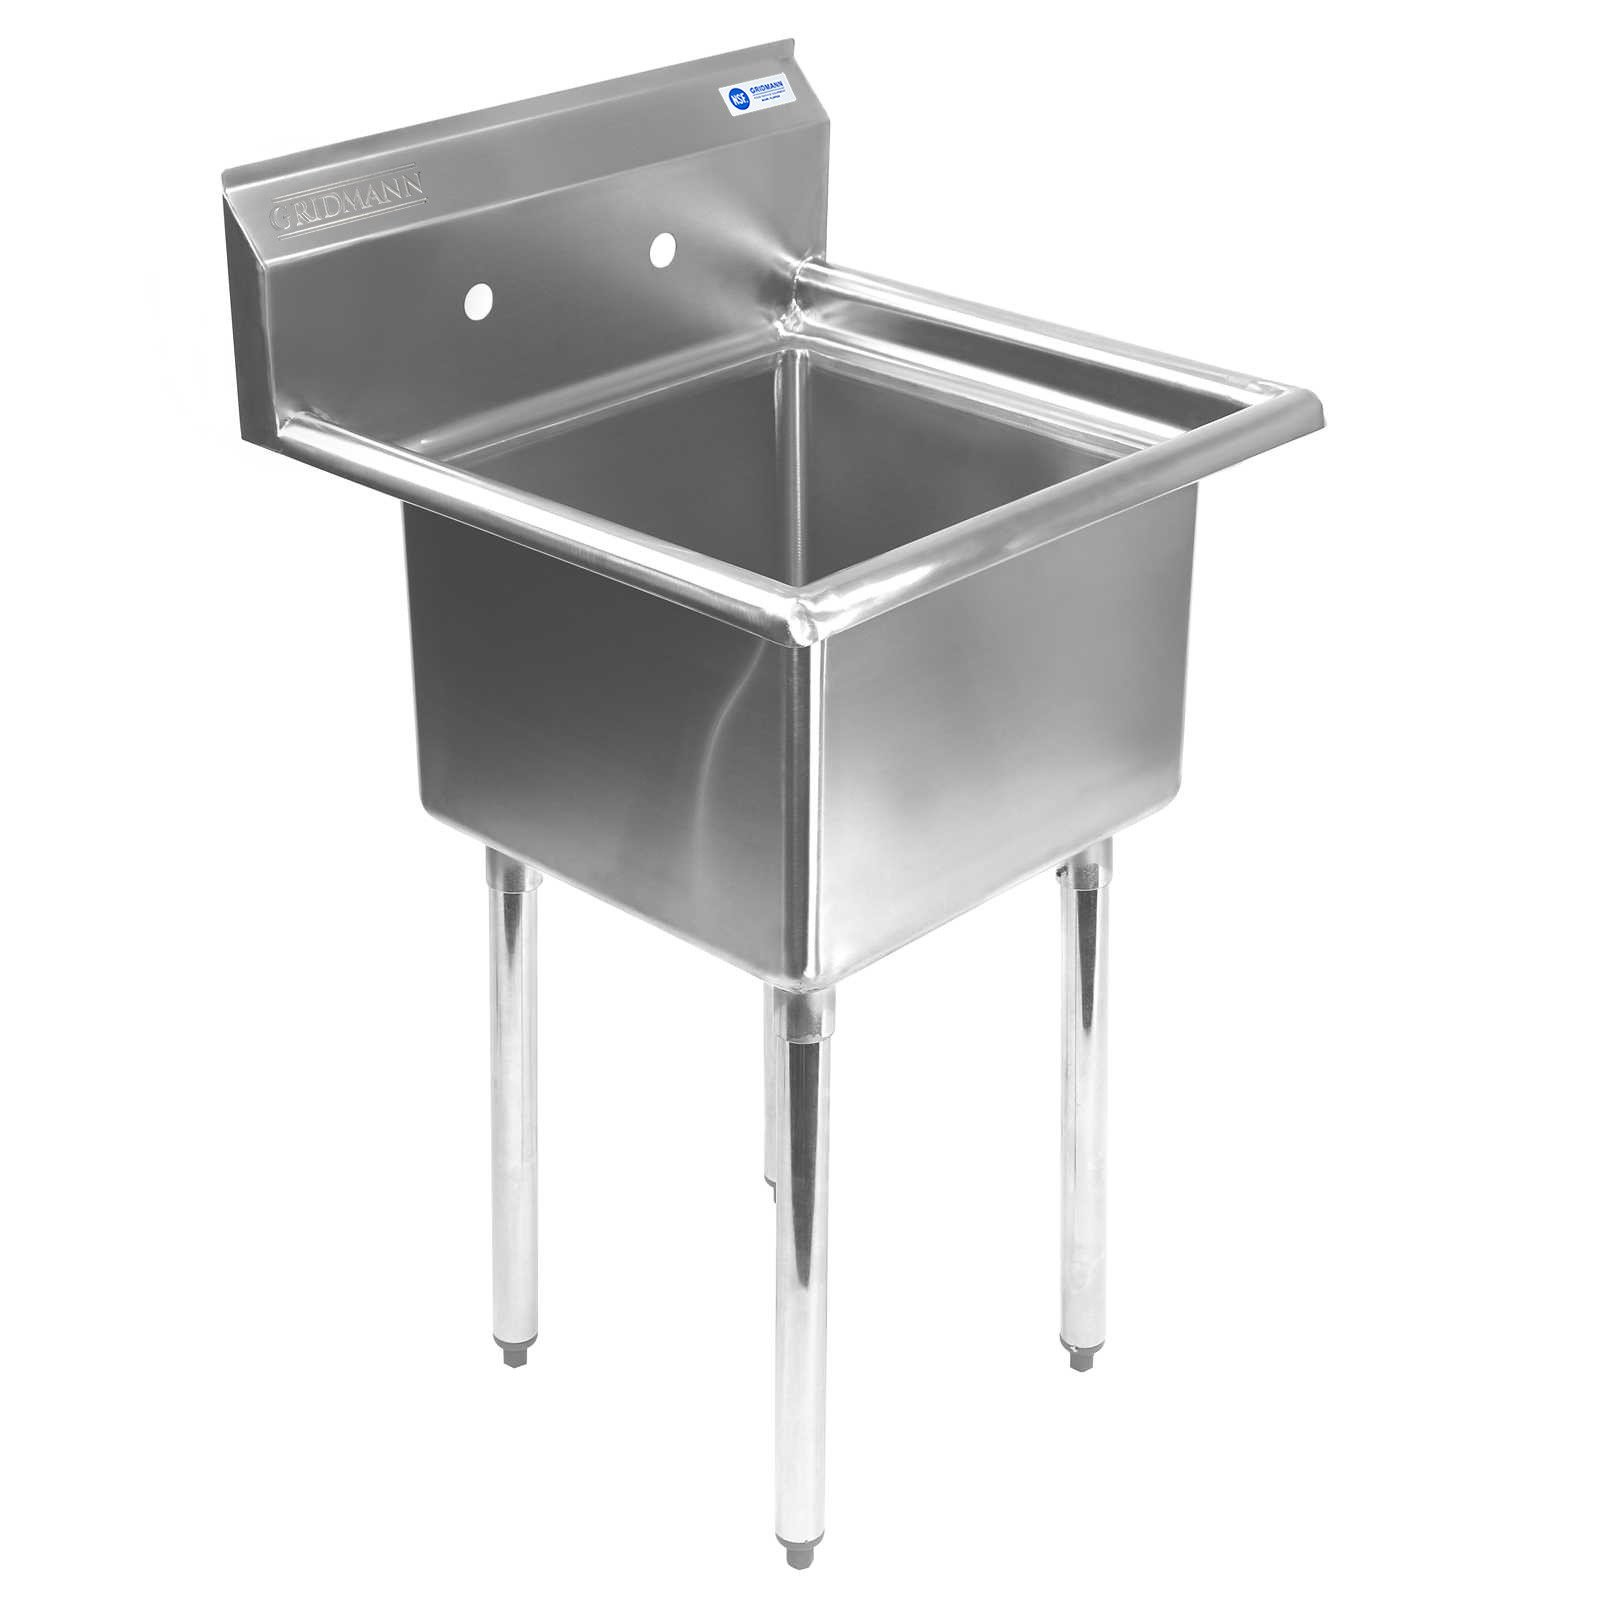 New Stainless Steel Utility Sink with Cabinet